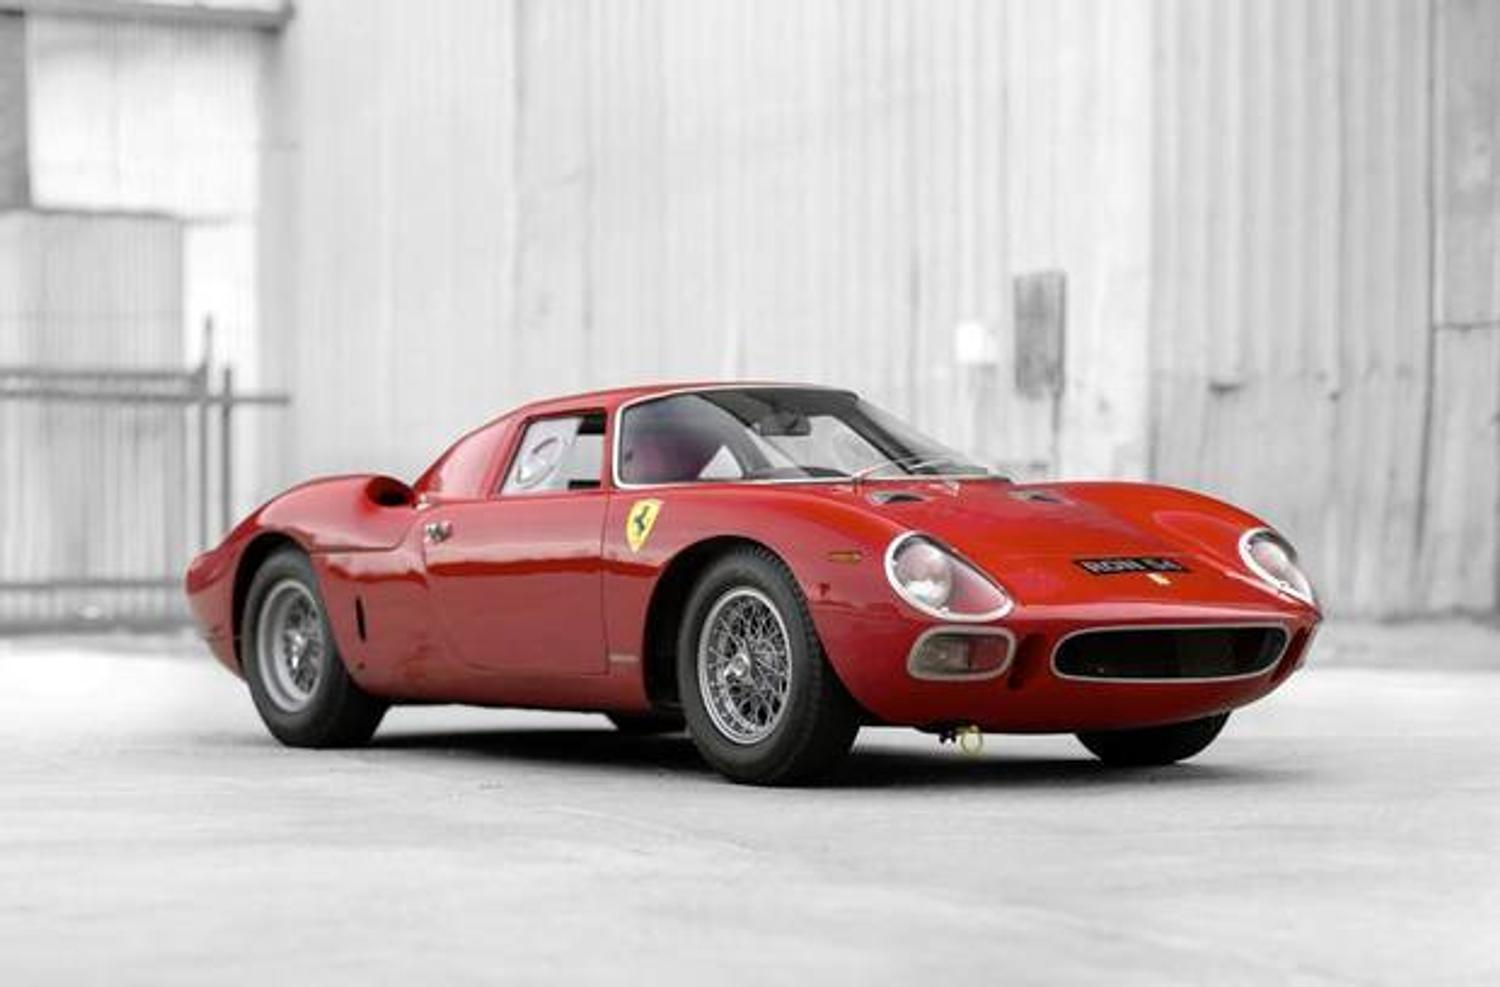 ferrari tops 67 million sale of world 39 s most expensive car collection. Cars Review. Best American Auto & Cars Review